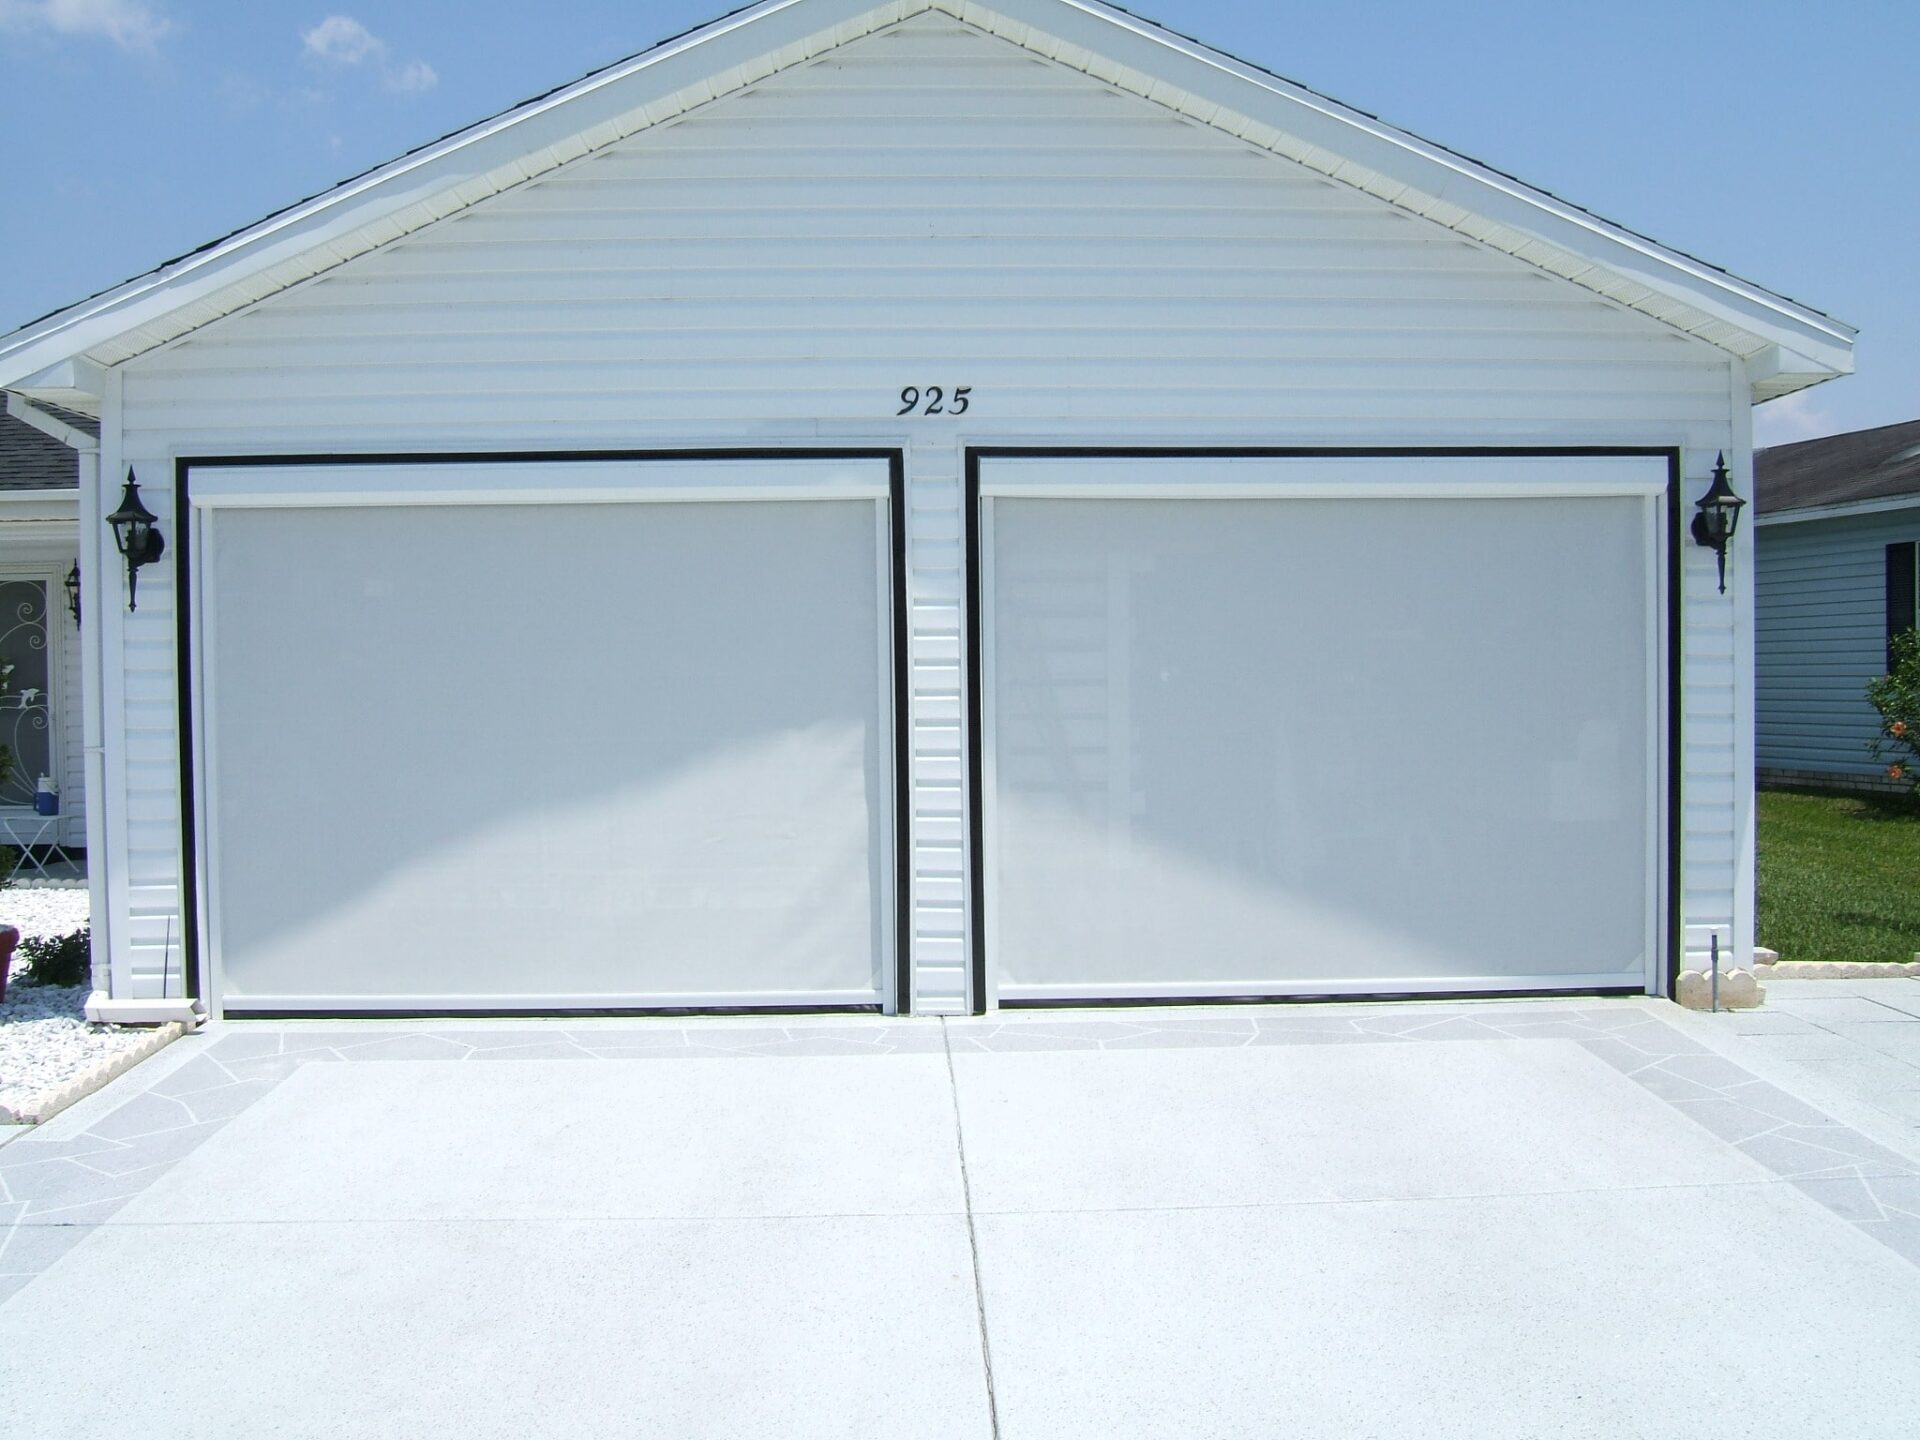 Residential Garage - Roman Shades, Roller Shades, Solar Shades, Cellular Shades, & more - Dynamic Delivery Blinds | Nashville, TN